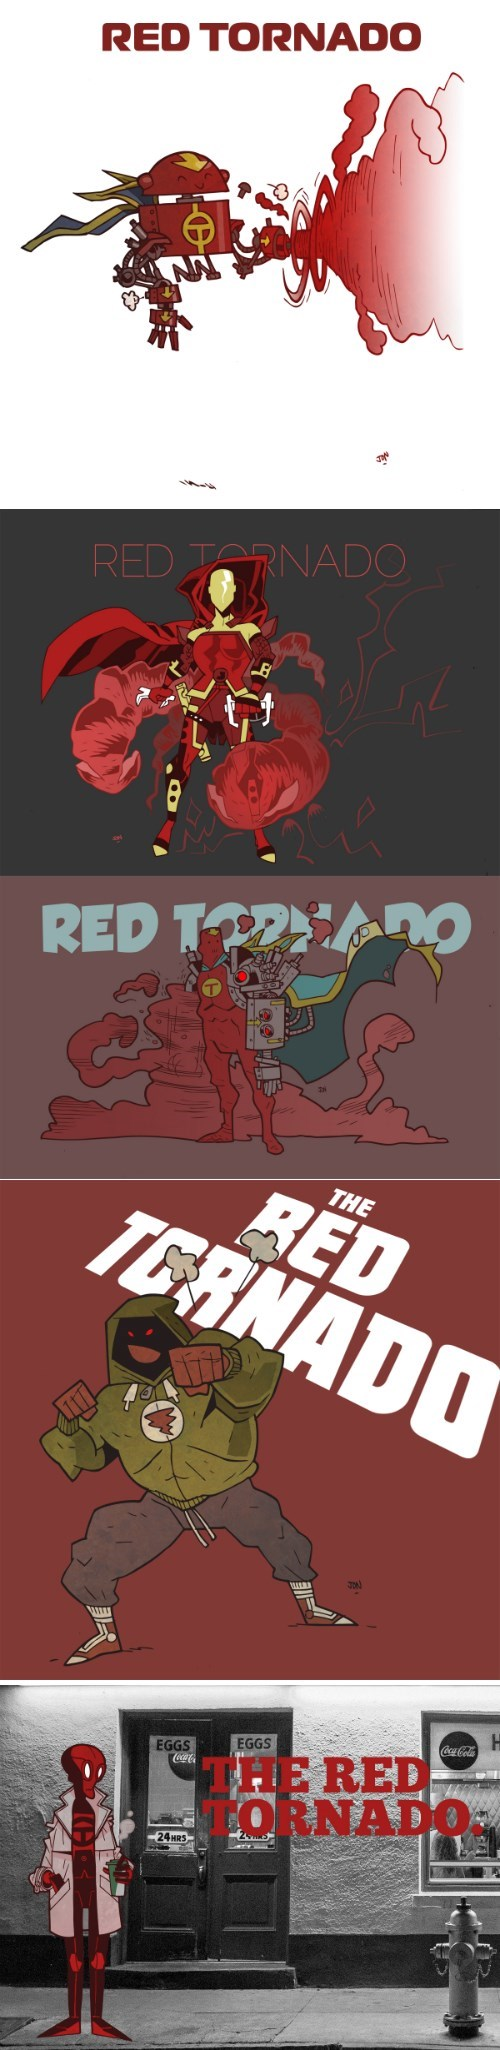 5 Designs To Improve Red Tornado